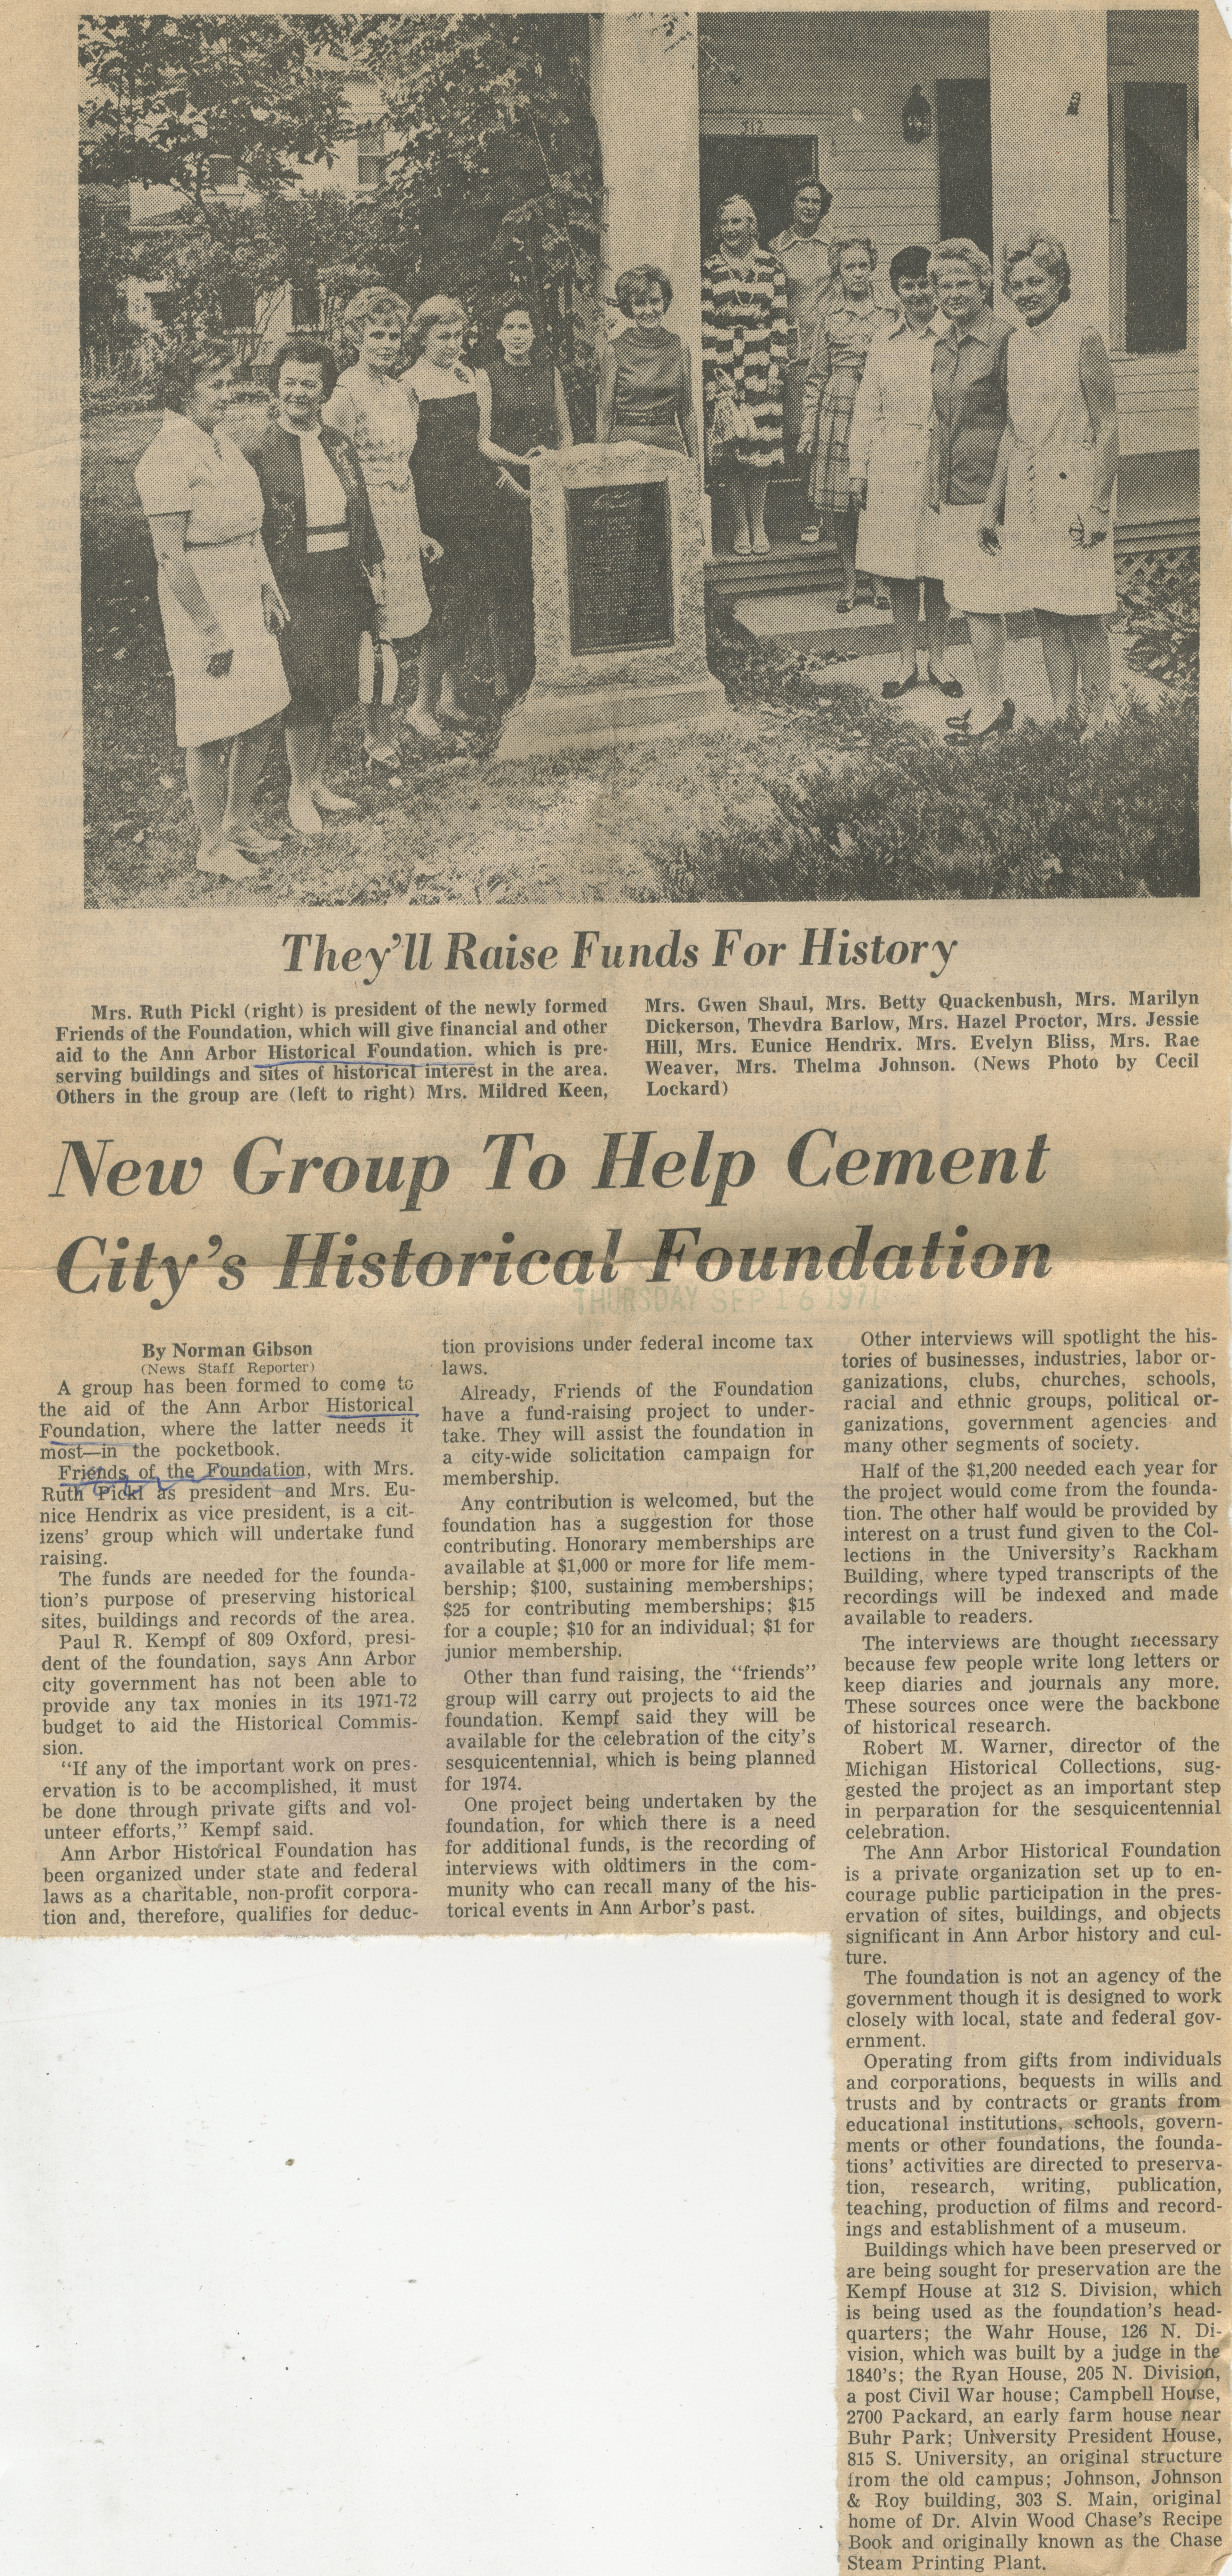 New Group To Help Cement City's Historical Foundation image